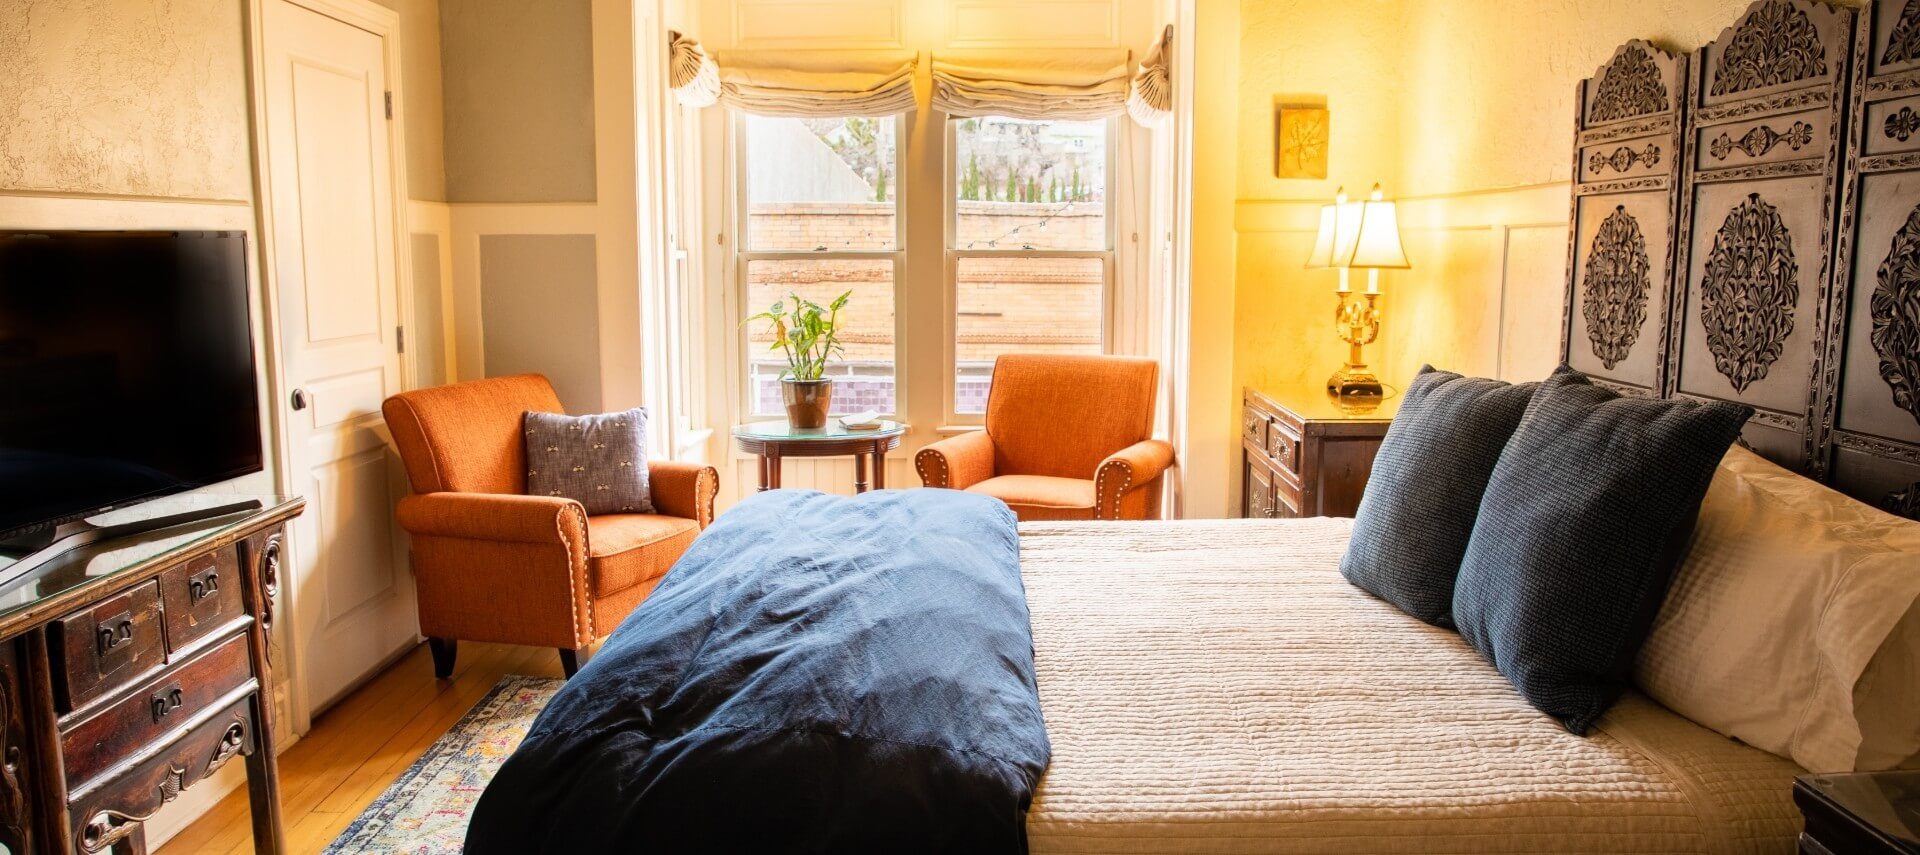 Large bed with decorative headboard in spacious suite with orange sitting chairs and two bright windows